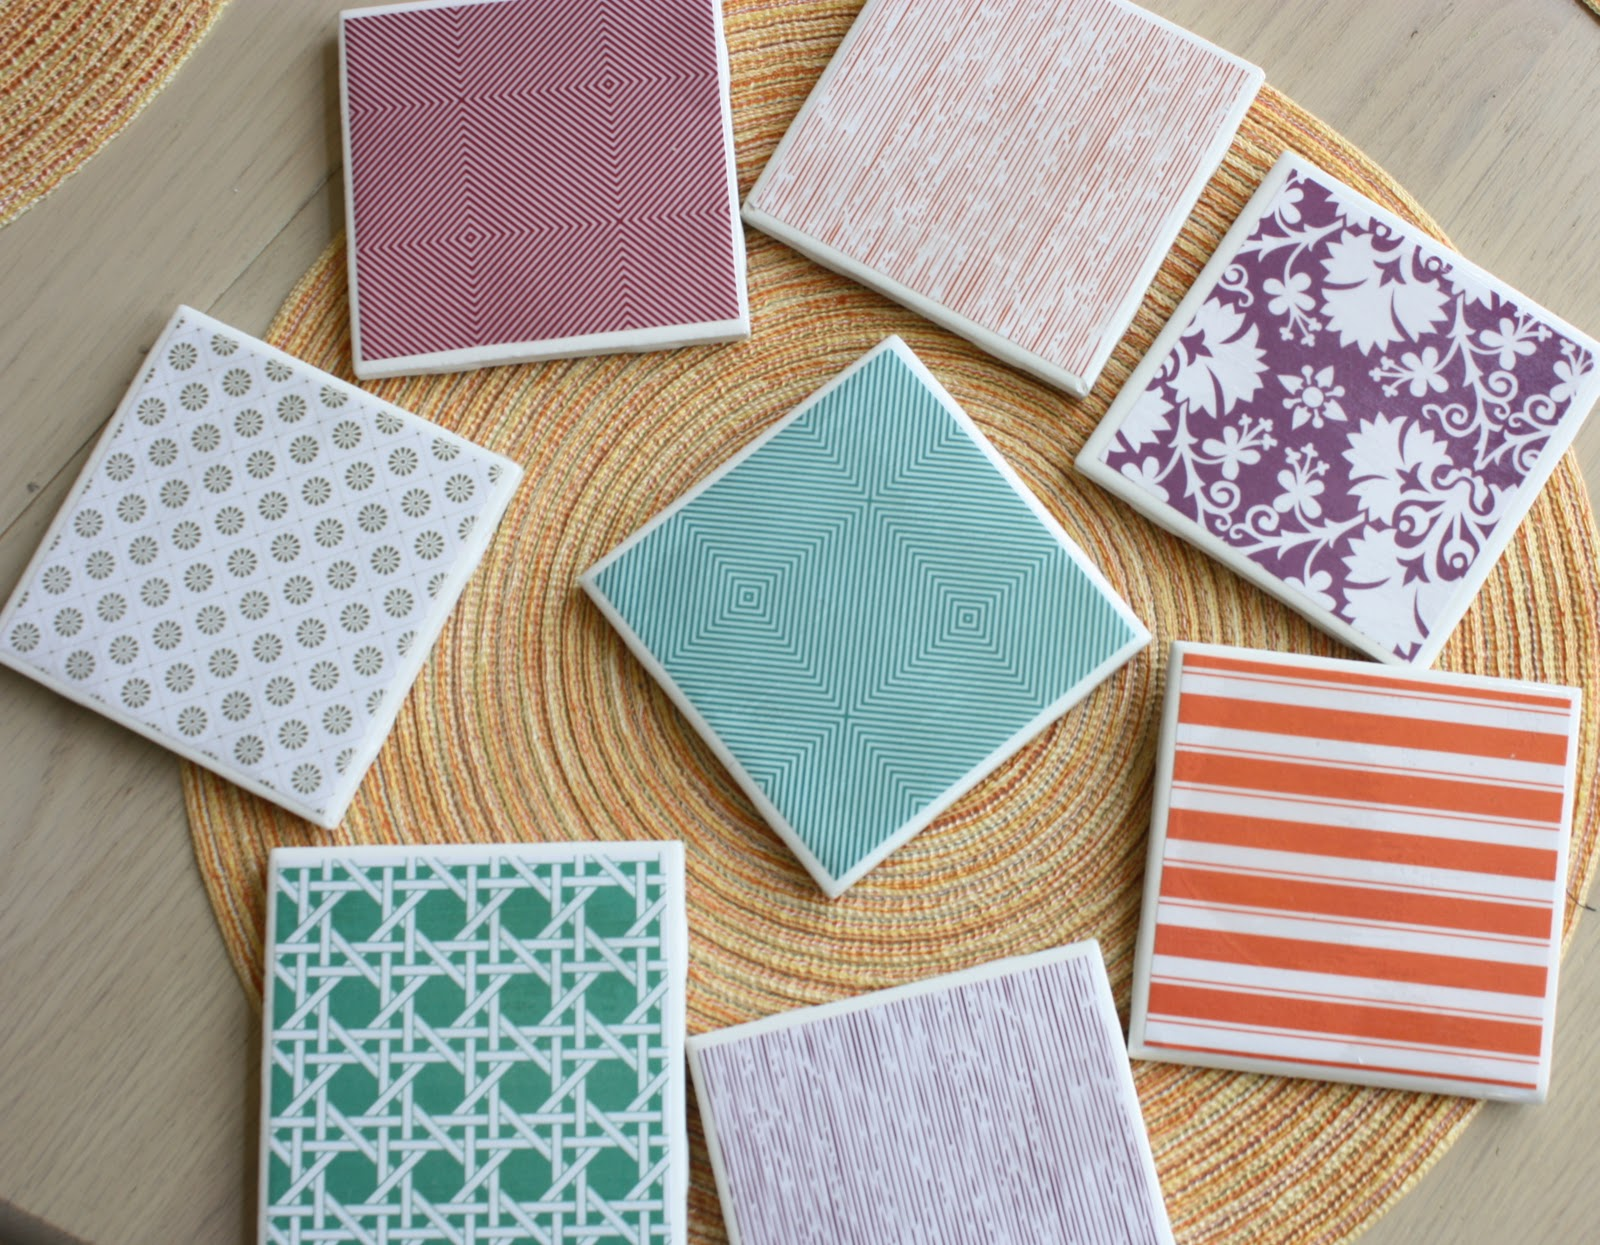 You can make your own coasters for a great deal! I plan to make some  Appalachian coasters for the Man Loft :)